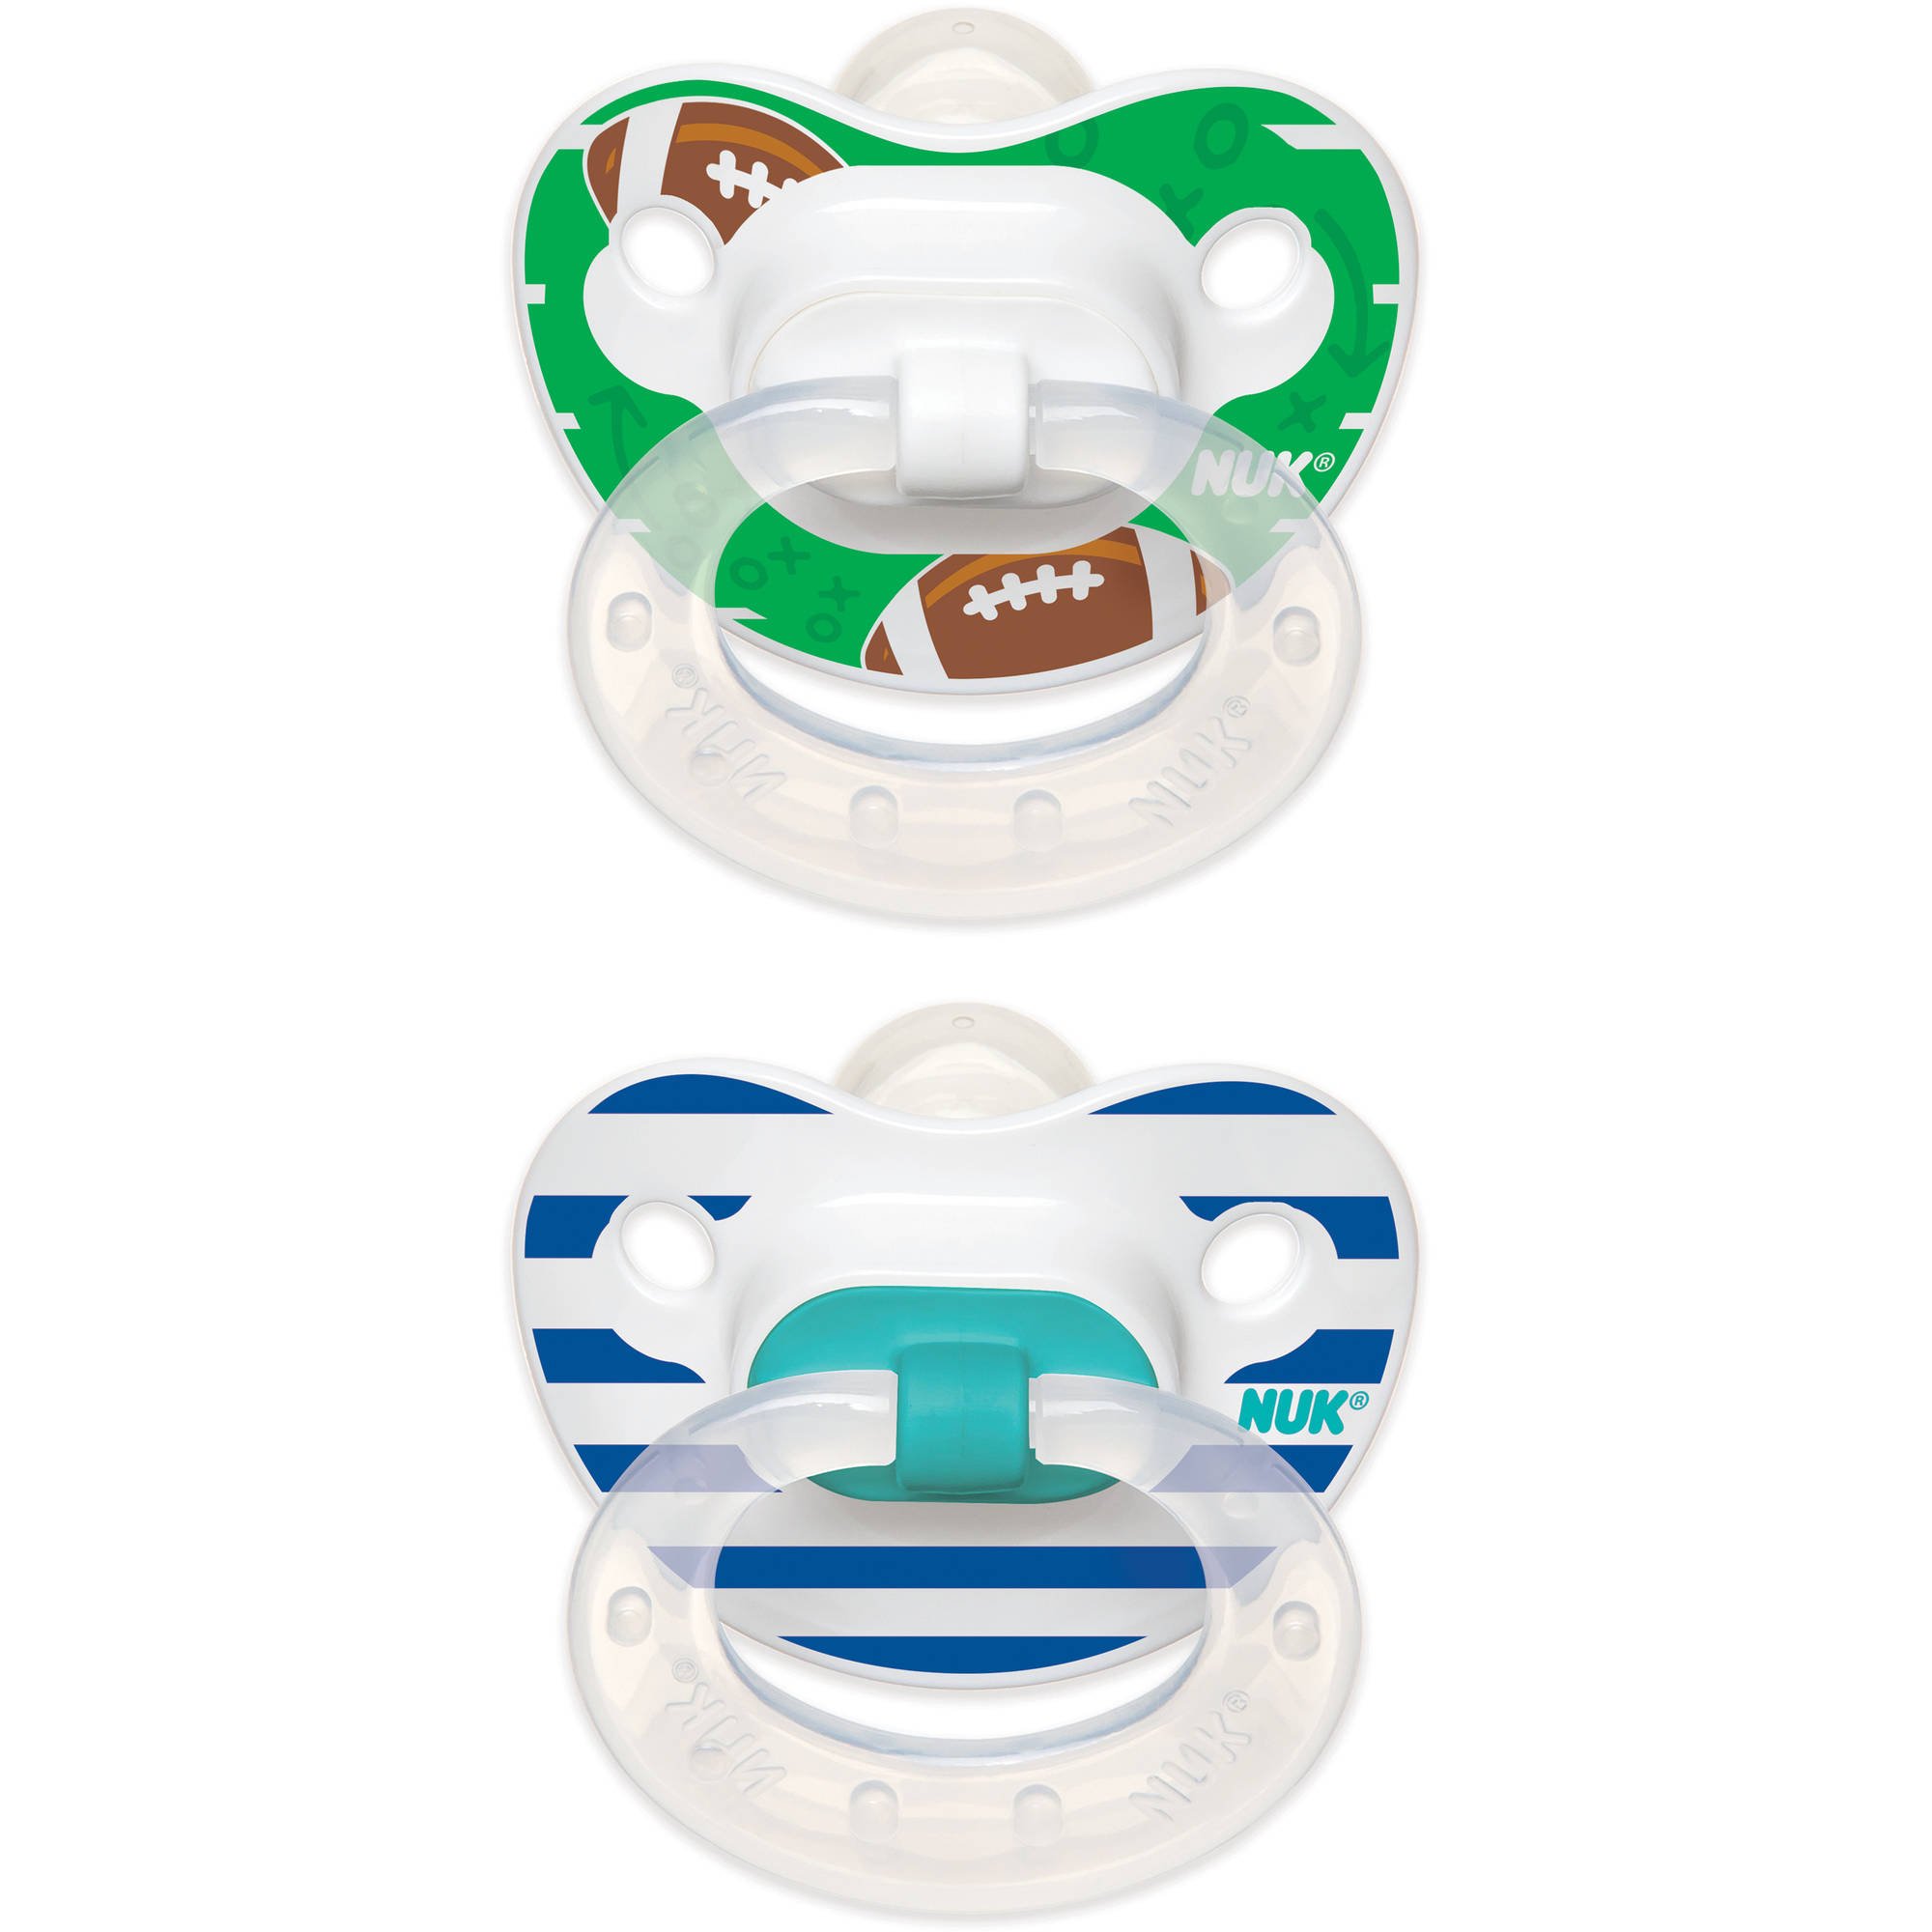 NUK Football Pattern Orthodontic Pacifier, 2pk